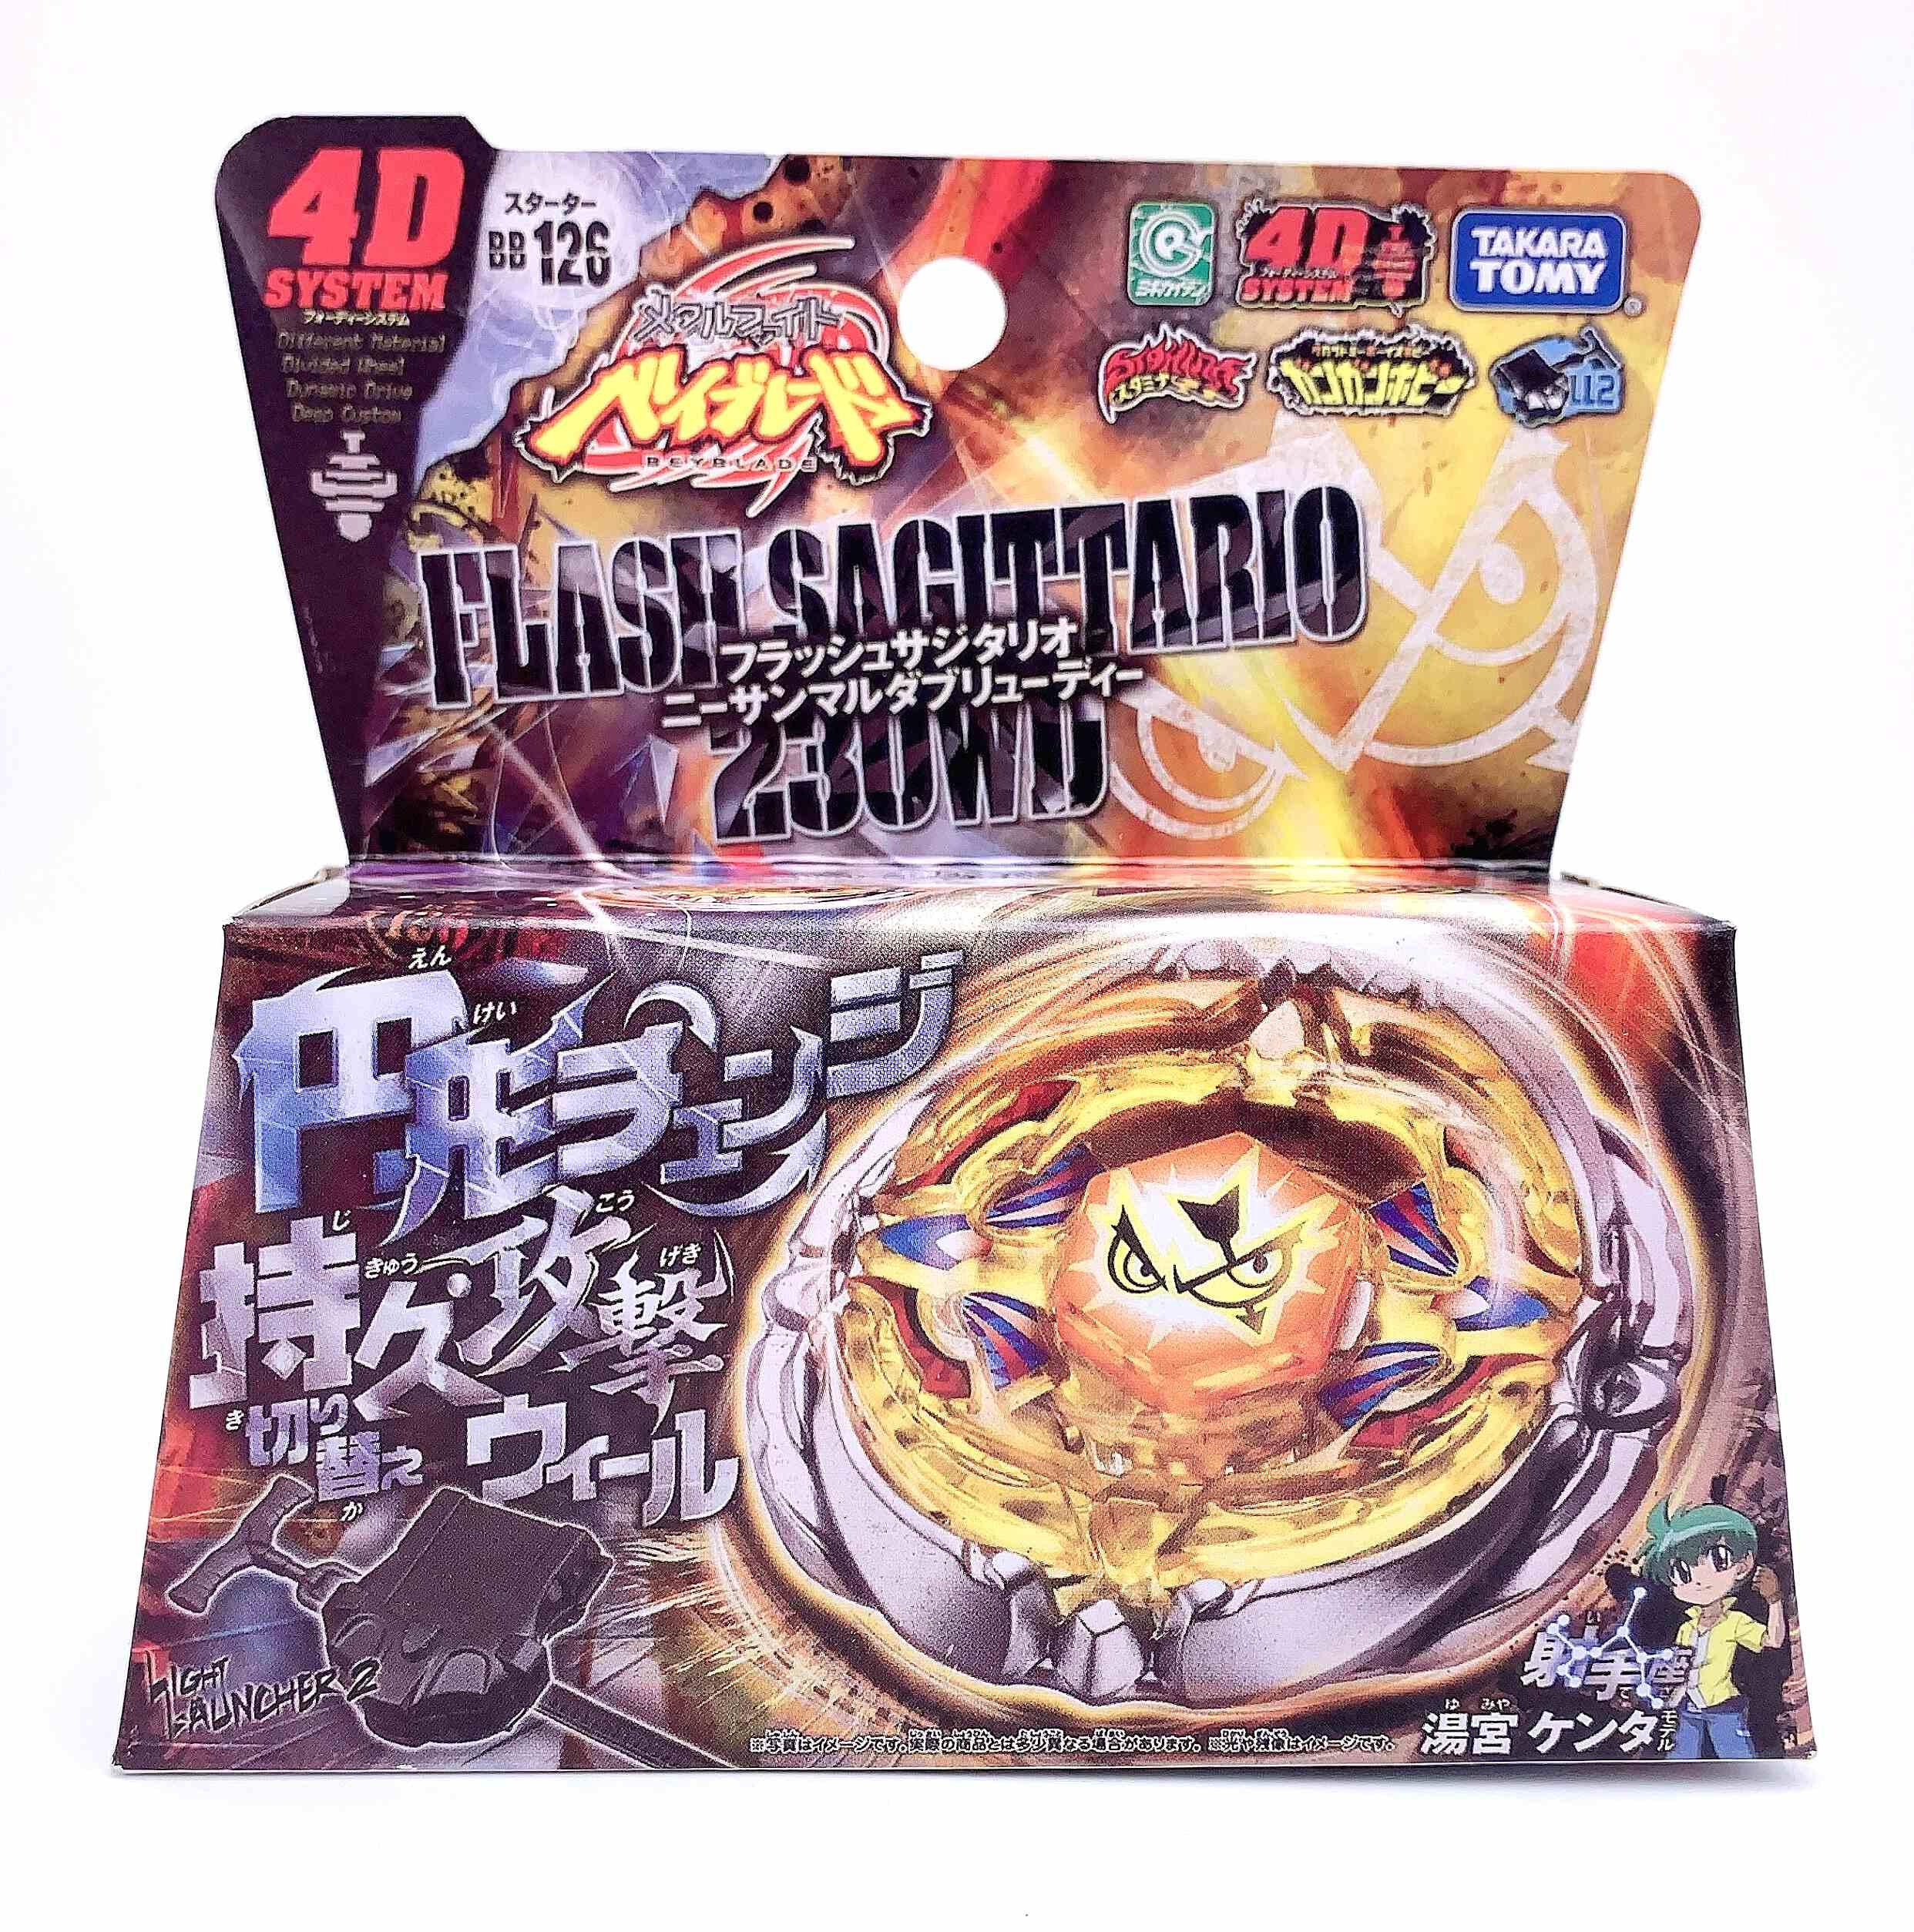 100% Takara Tomy Beyblade Metal Fight BB126 Flash Sagittario 230WD LAUNCHER as Children's Day Toys